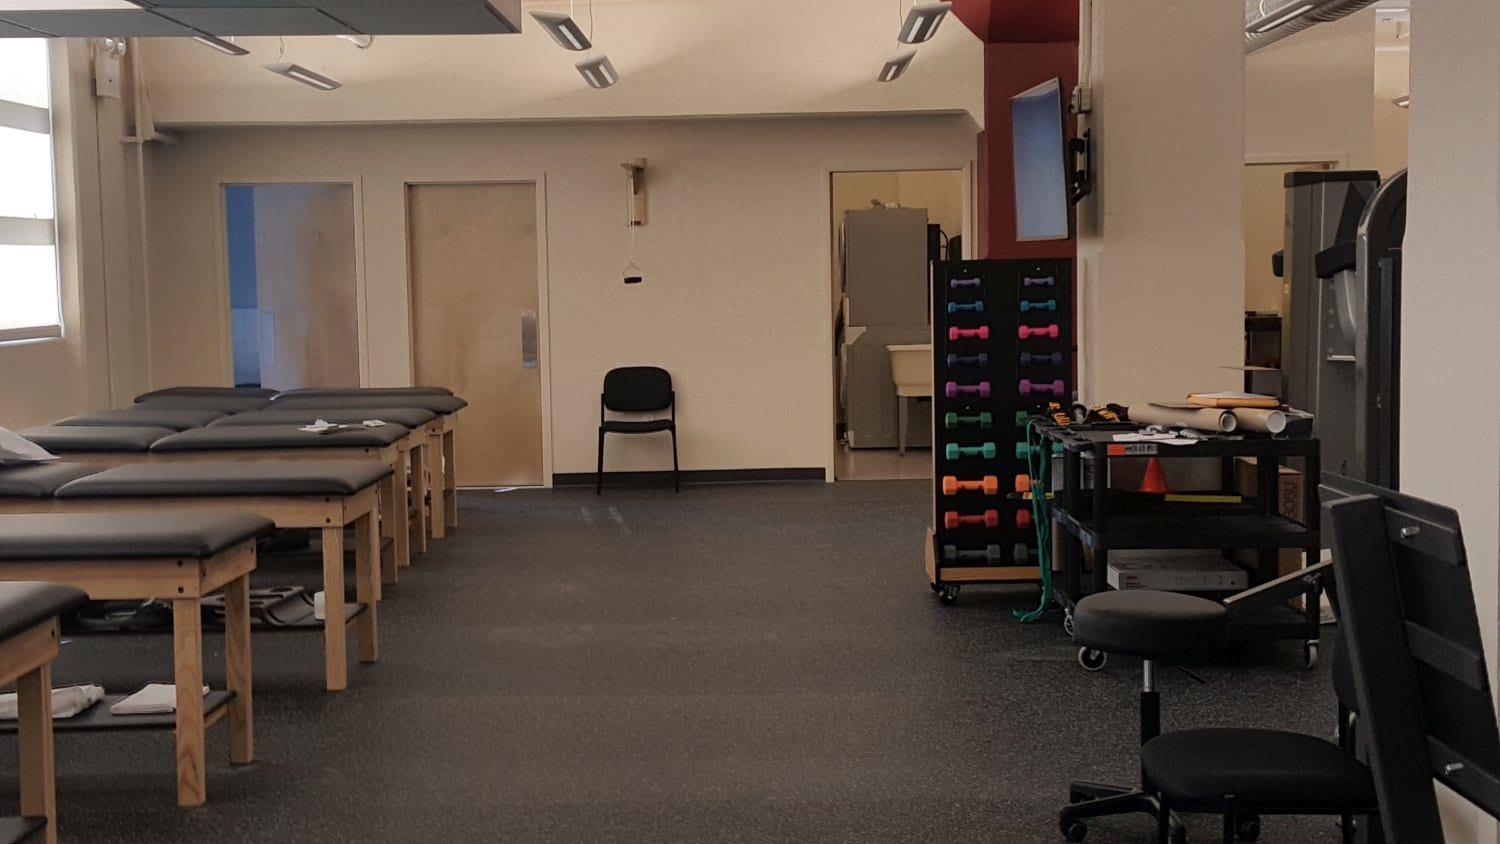 Here is an interior shot of our physical therapy clinic in Manhattan, New York City. The facility is located in midtown west on West 52nd street.